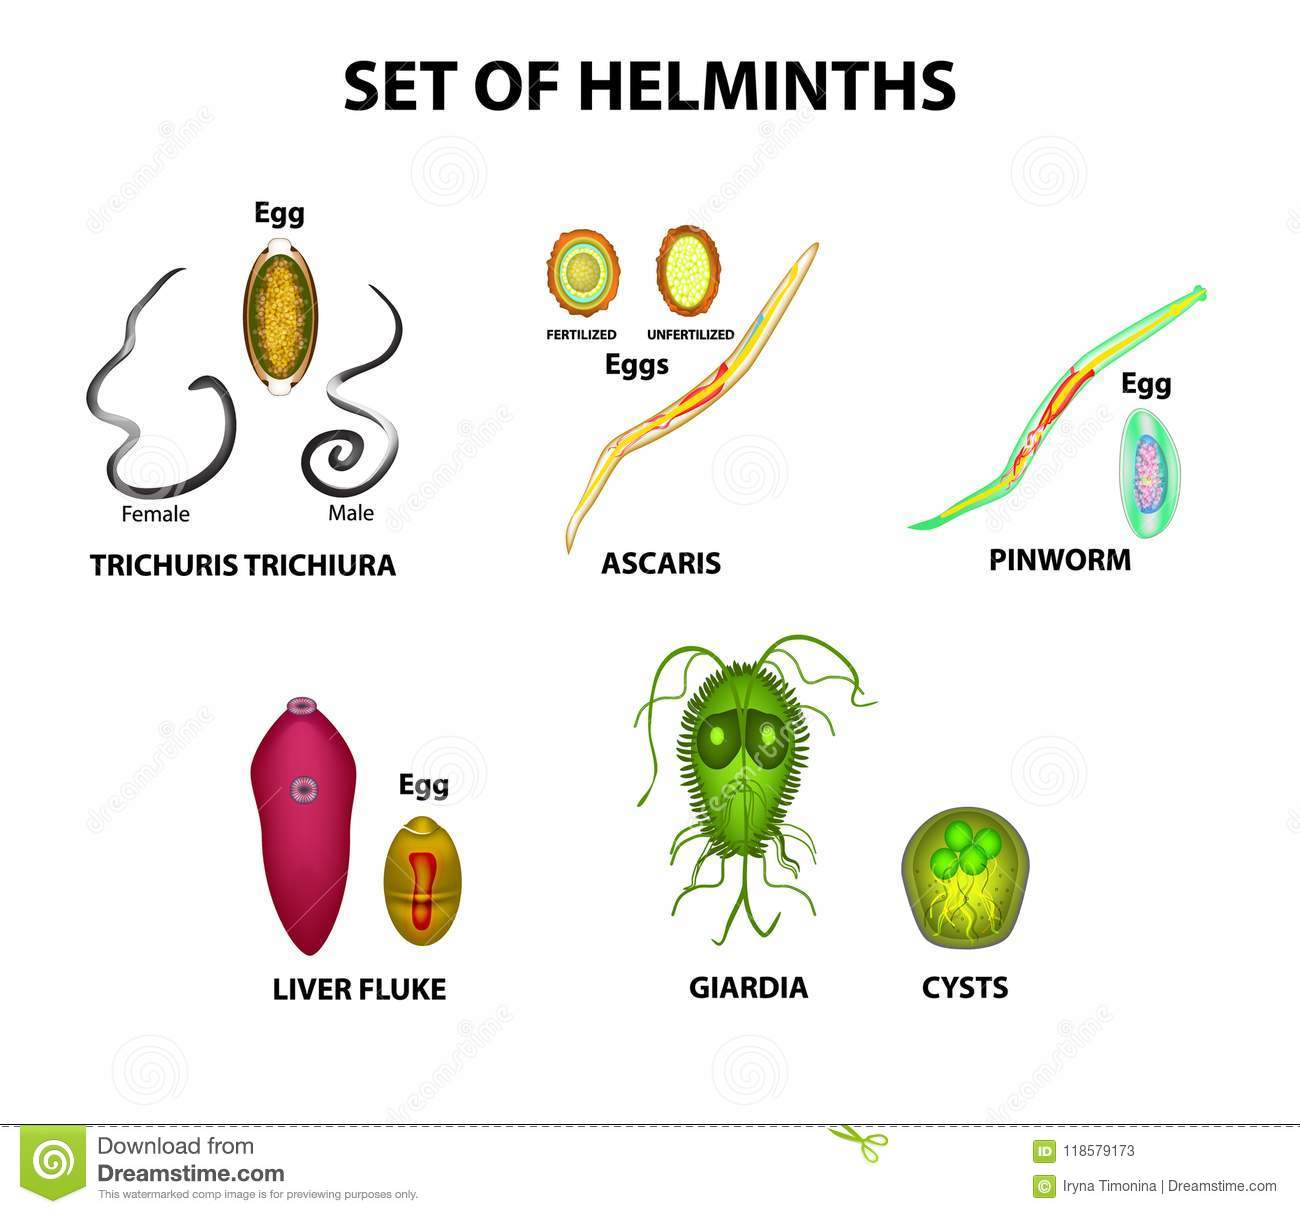 HELMINTHS > 02.Ascaris whipworm and pinworm